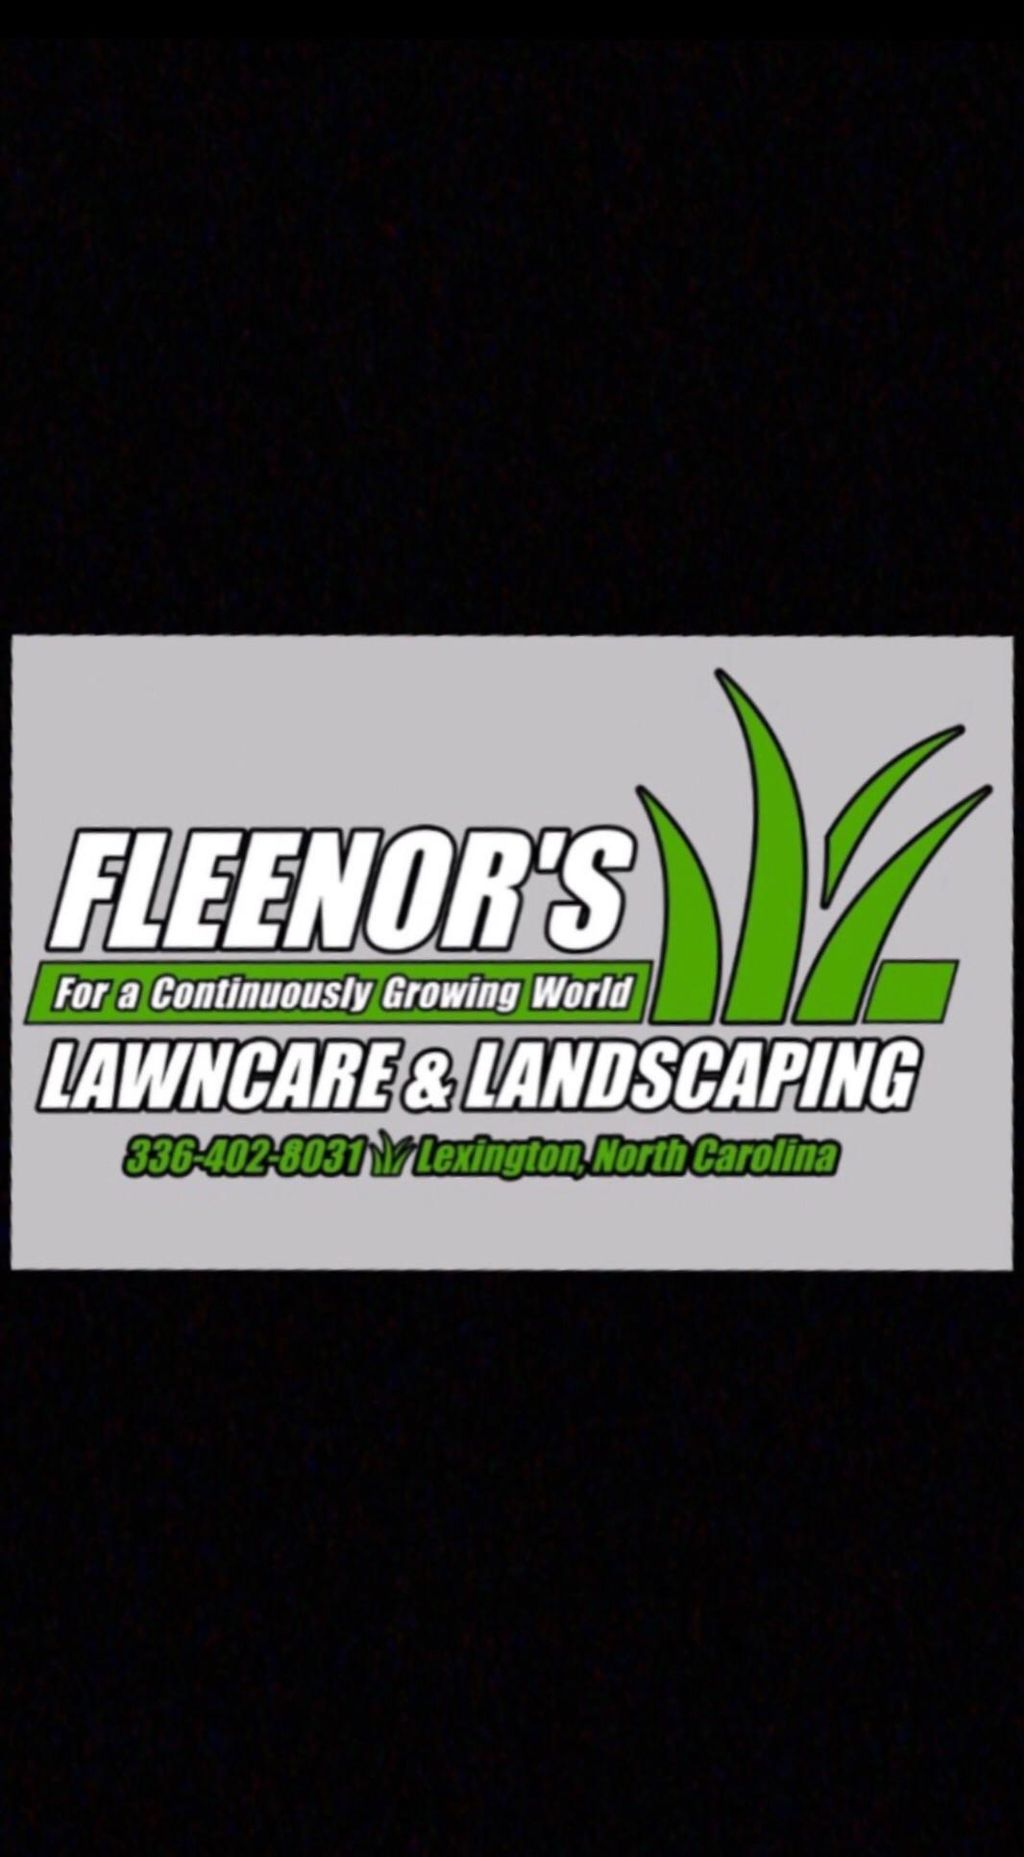 Fleenors Lawn Care and Landscaping